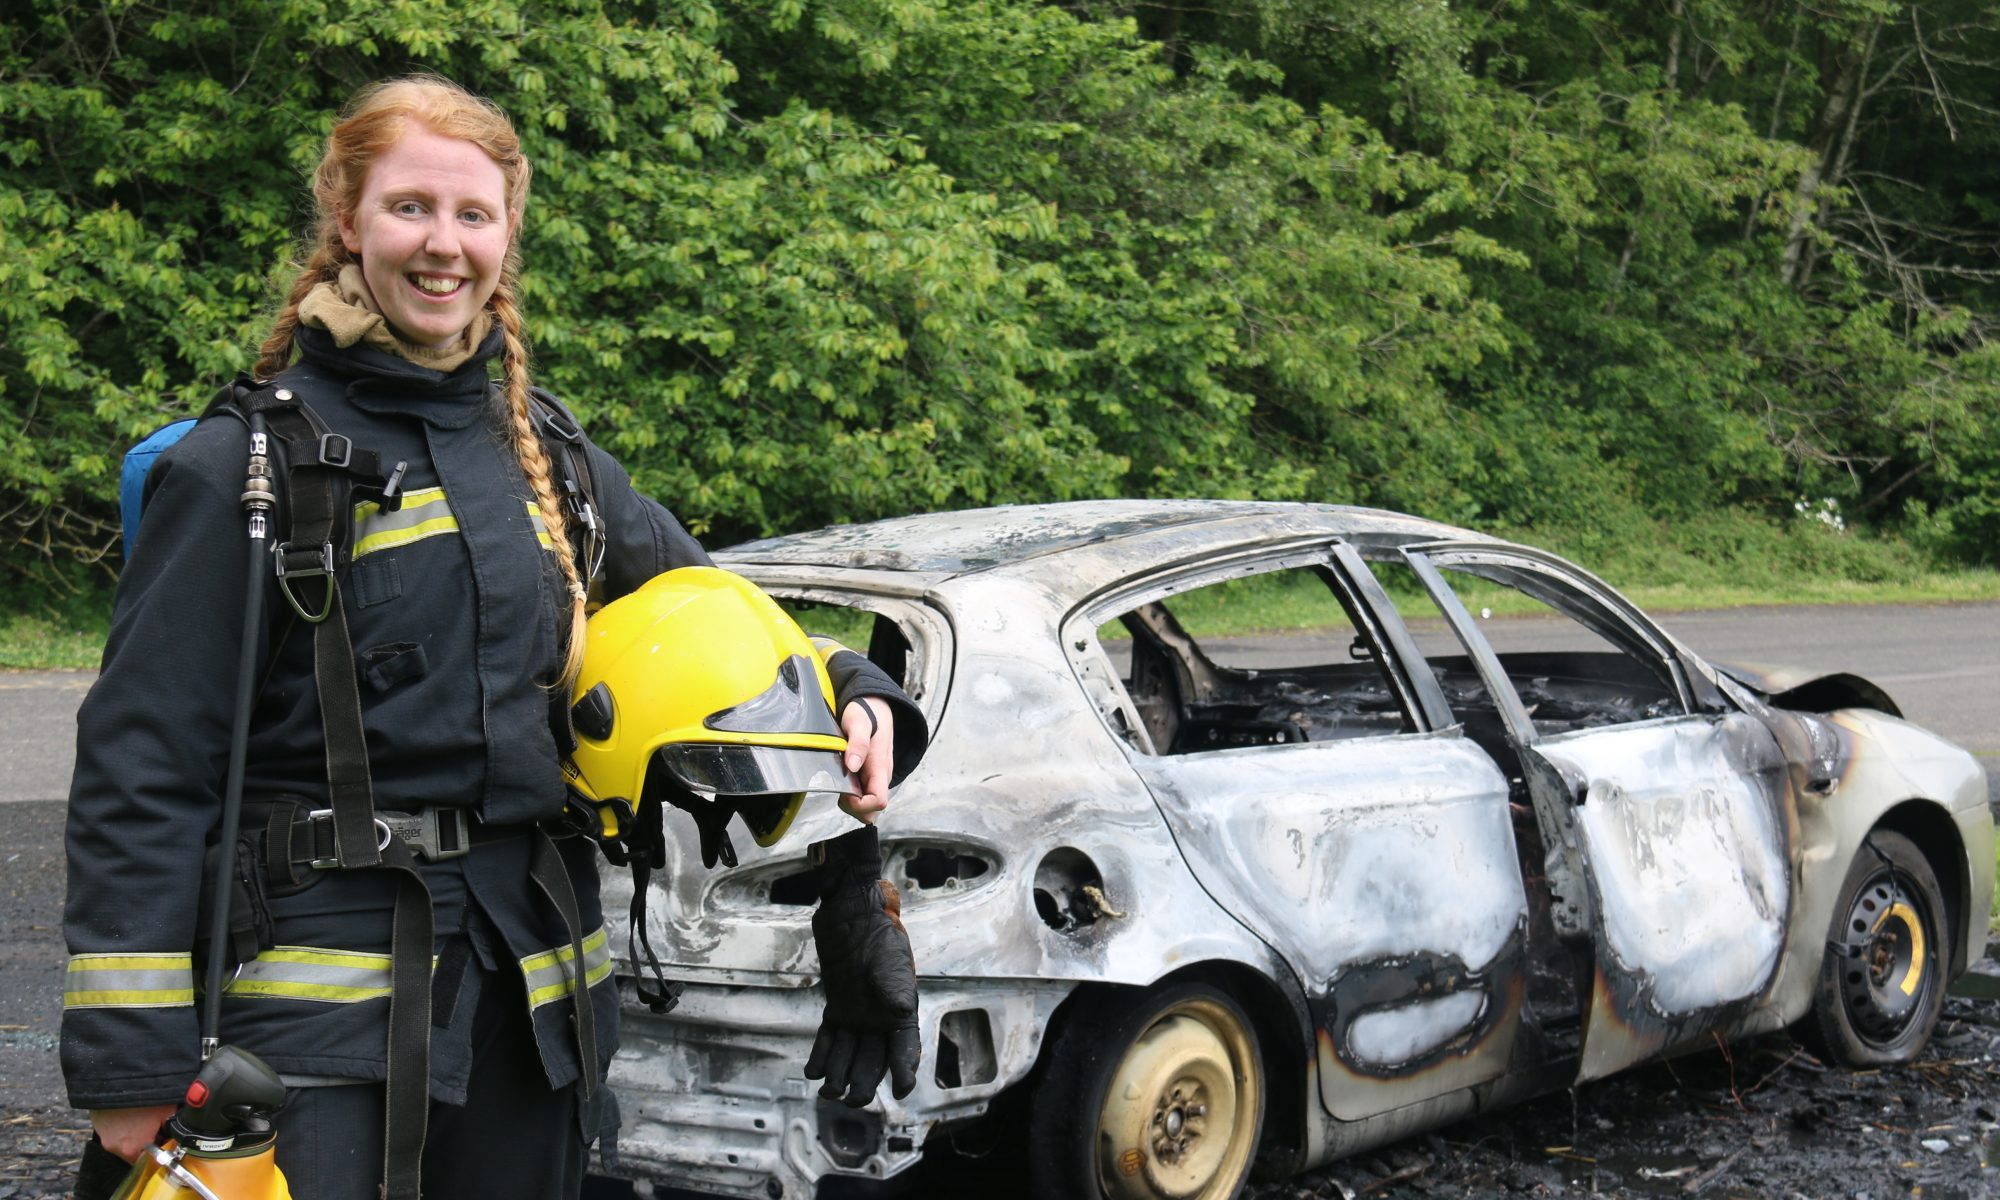 WFS member, standing next to a car during car fire training.